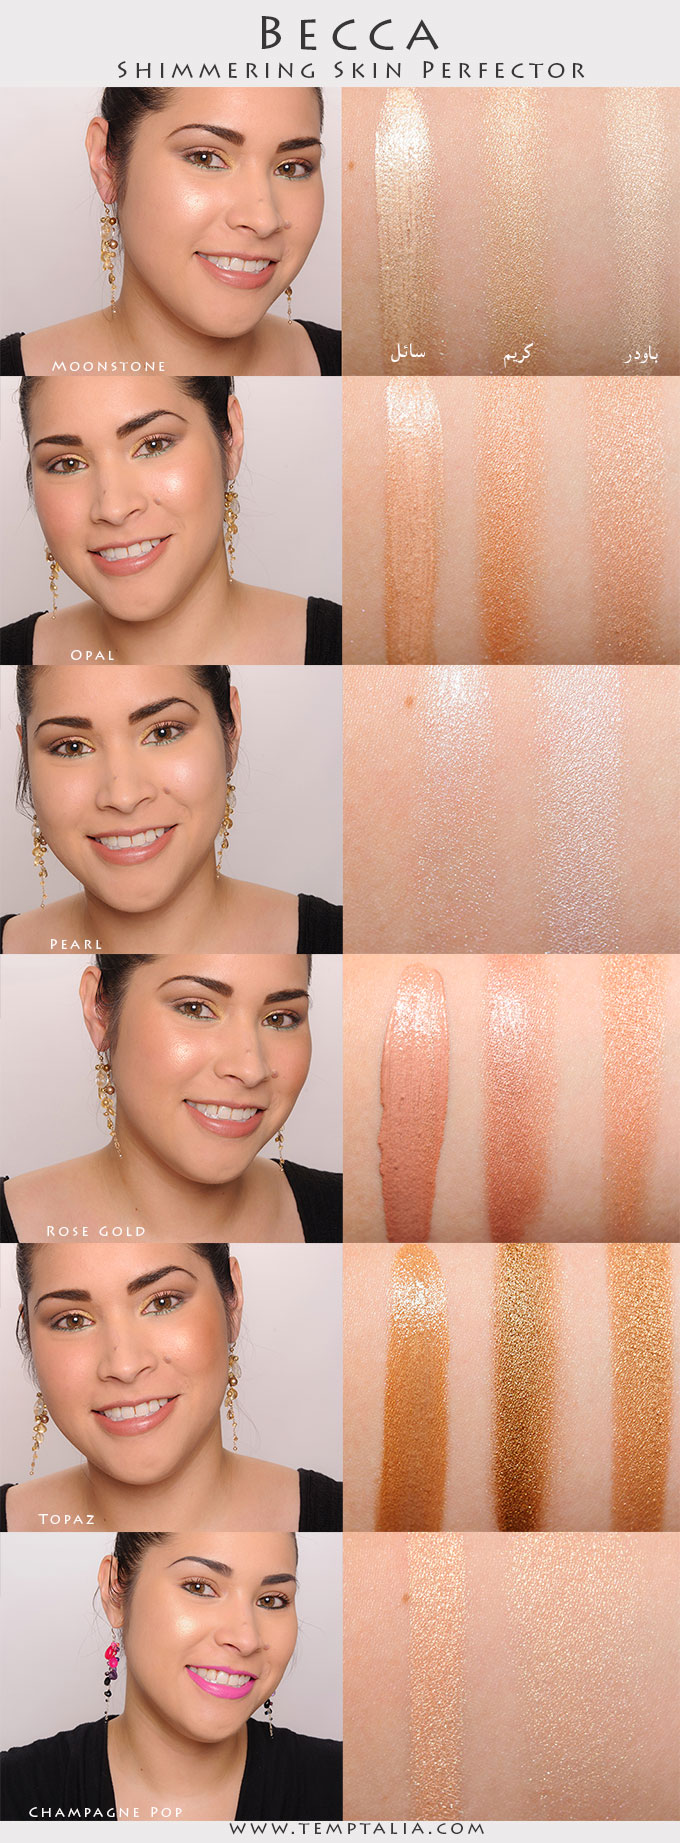 BECCA-SHIMMERING-SKIN-PERFECTORS--COMPARISONS,-SWATCHES